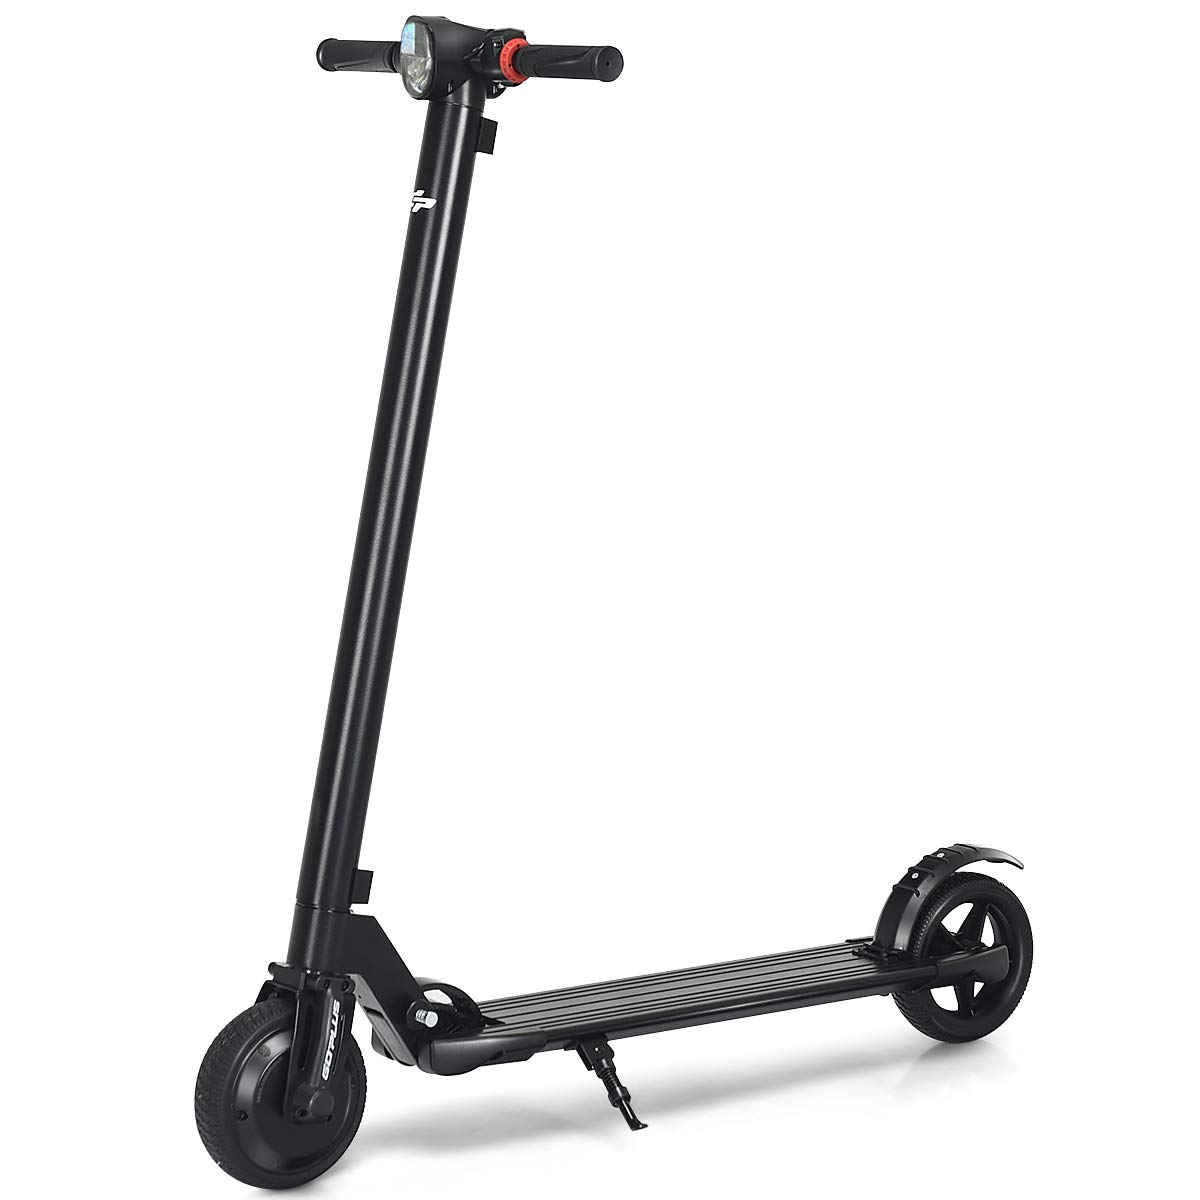 Goplus Foldable Electric Scooter, Ultra-Lightweight Portable Kick Scooter, 14 MPH Up to 6 Miles Long-Range Battery, Black by Goplus